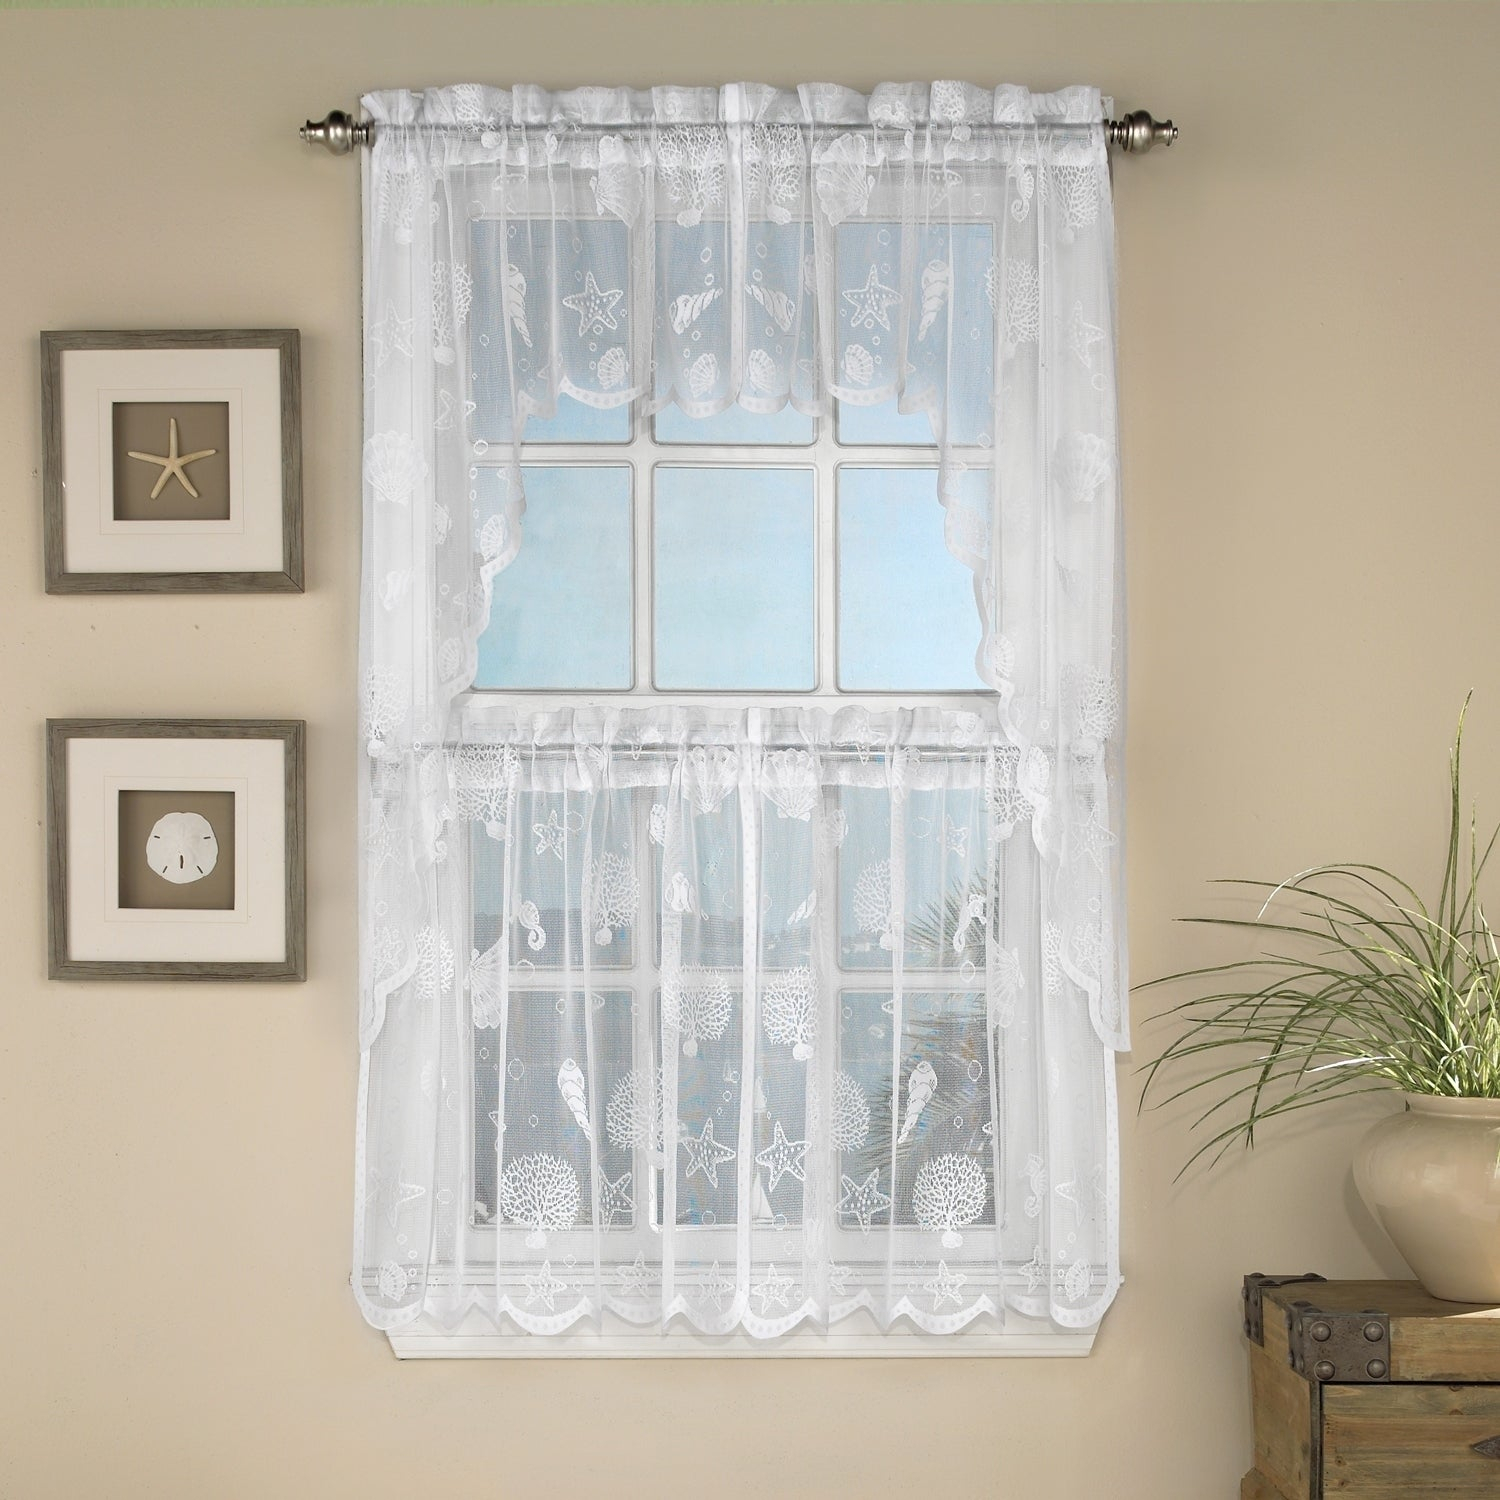 Marine Life Motif Knitted Lace Window Curtain Pieces Regarding Ivory Knit Lace Bird Motif Window Curtain (View 11 of 20)